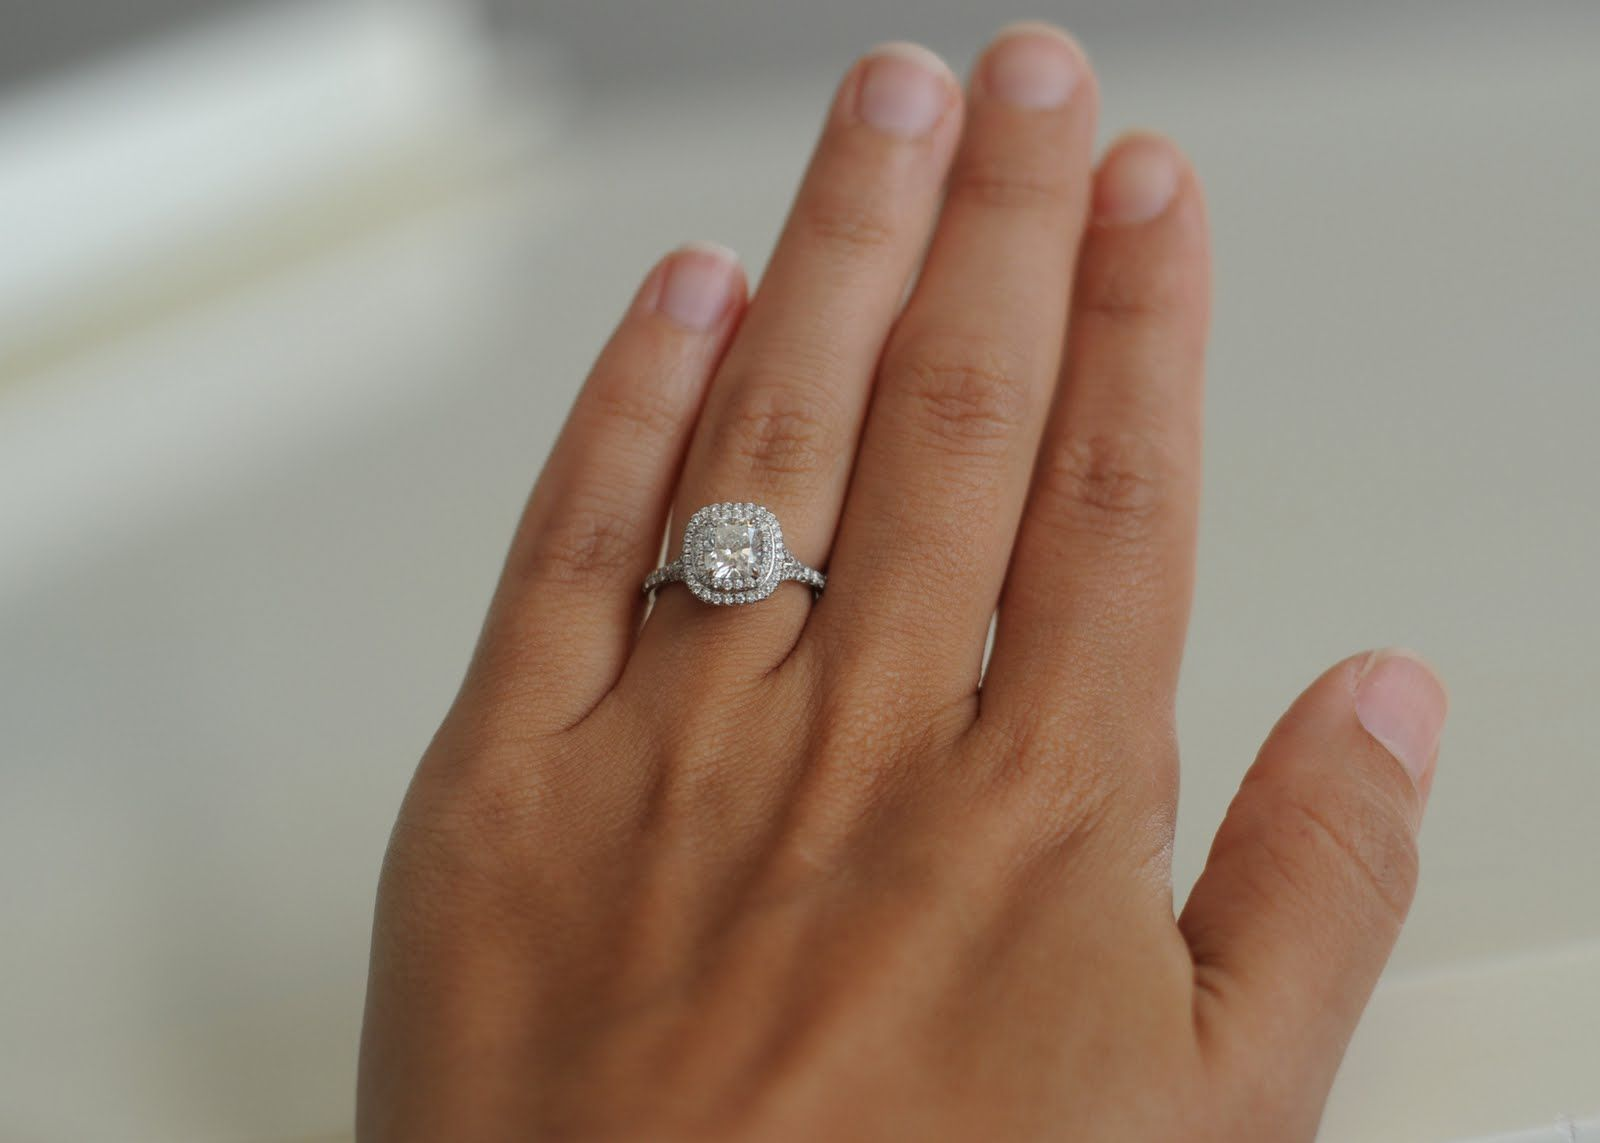 Tiffany Soleste E Ring I Tried This Beauty On In July When I Went